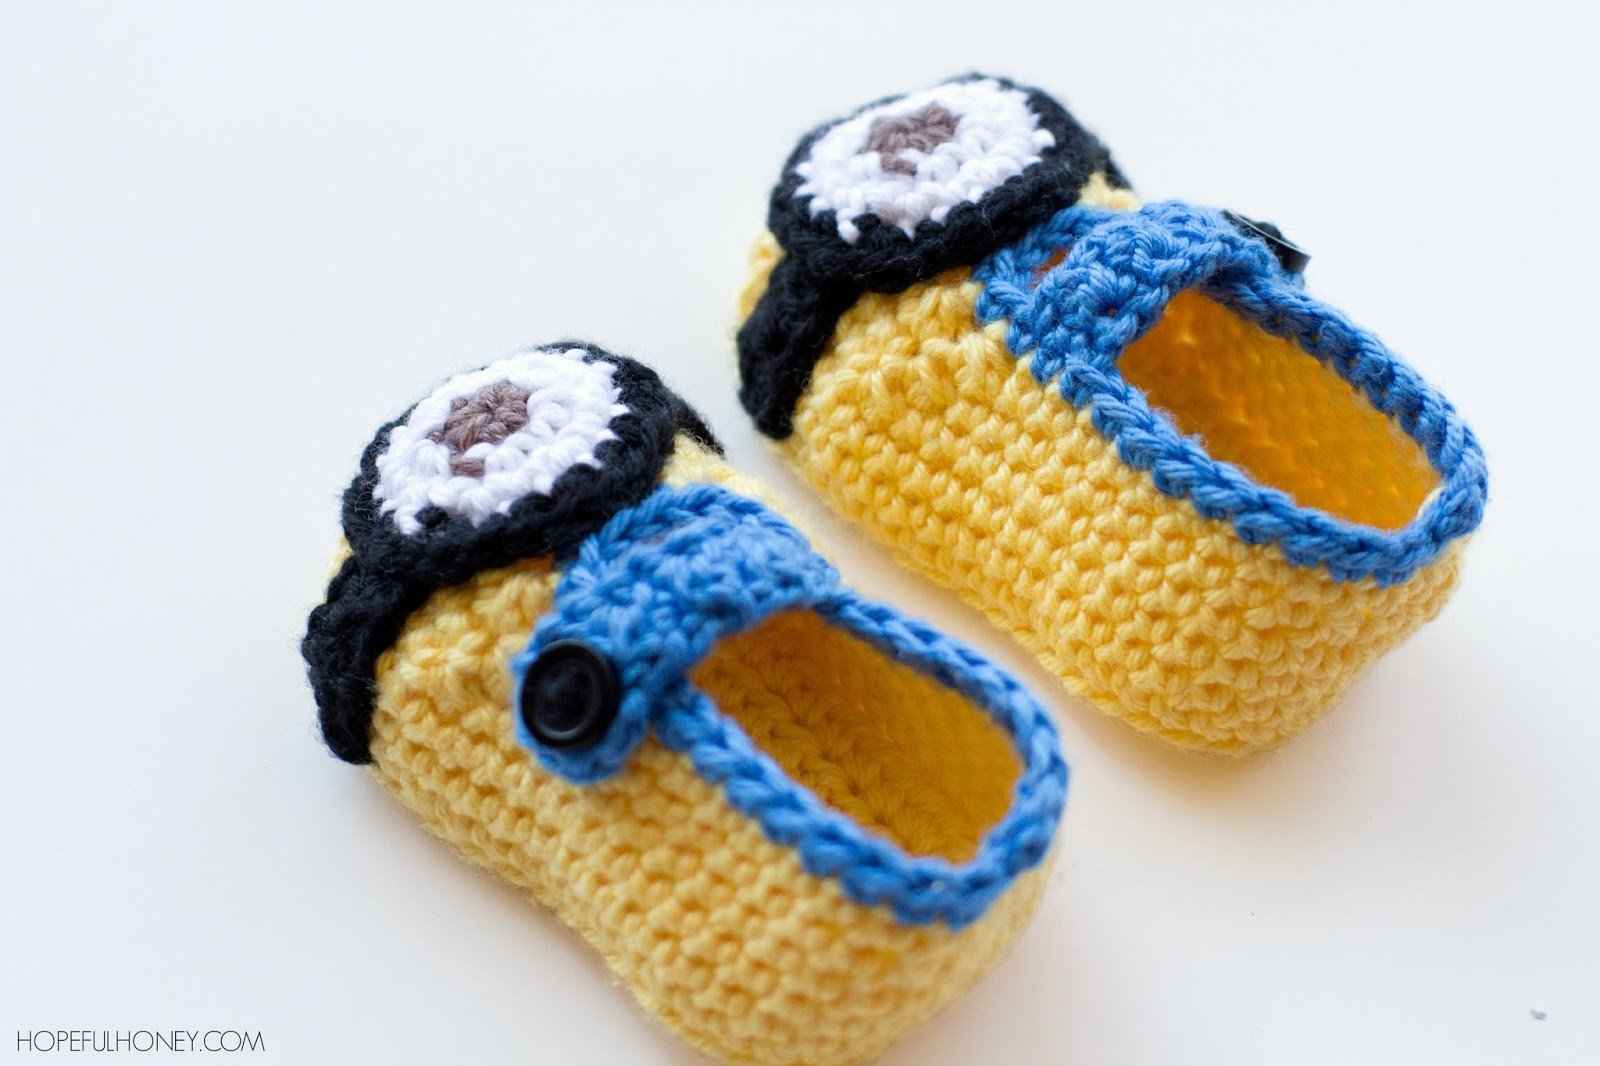 Free Crochet Pattern For Baby Minion Slippers : Hopeful Honey Craft, Crochet, Create: Minion Inspired ...